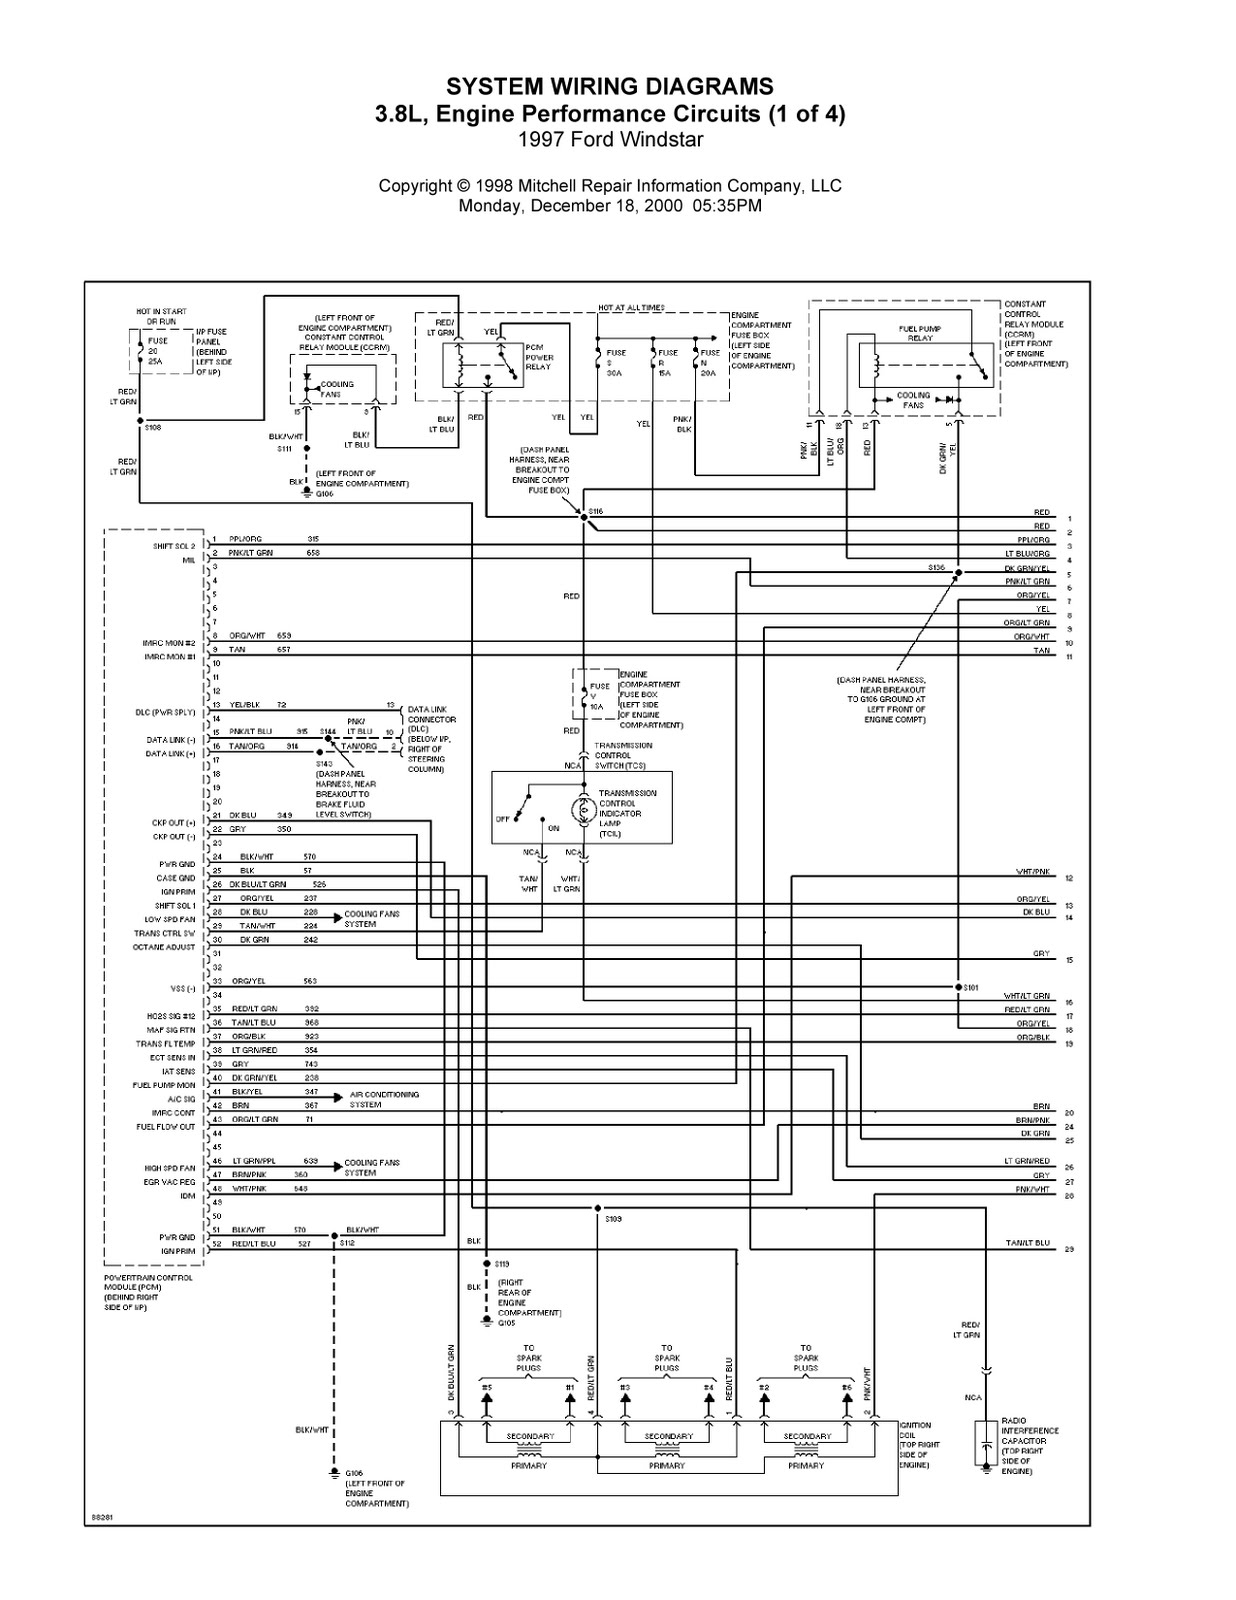 2003 Ford Windstar Radio Wiring Diagram from 1.bp.blogspot.com